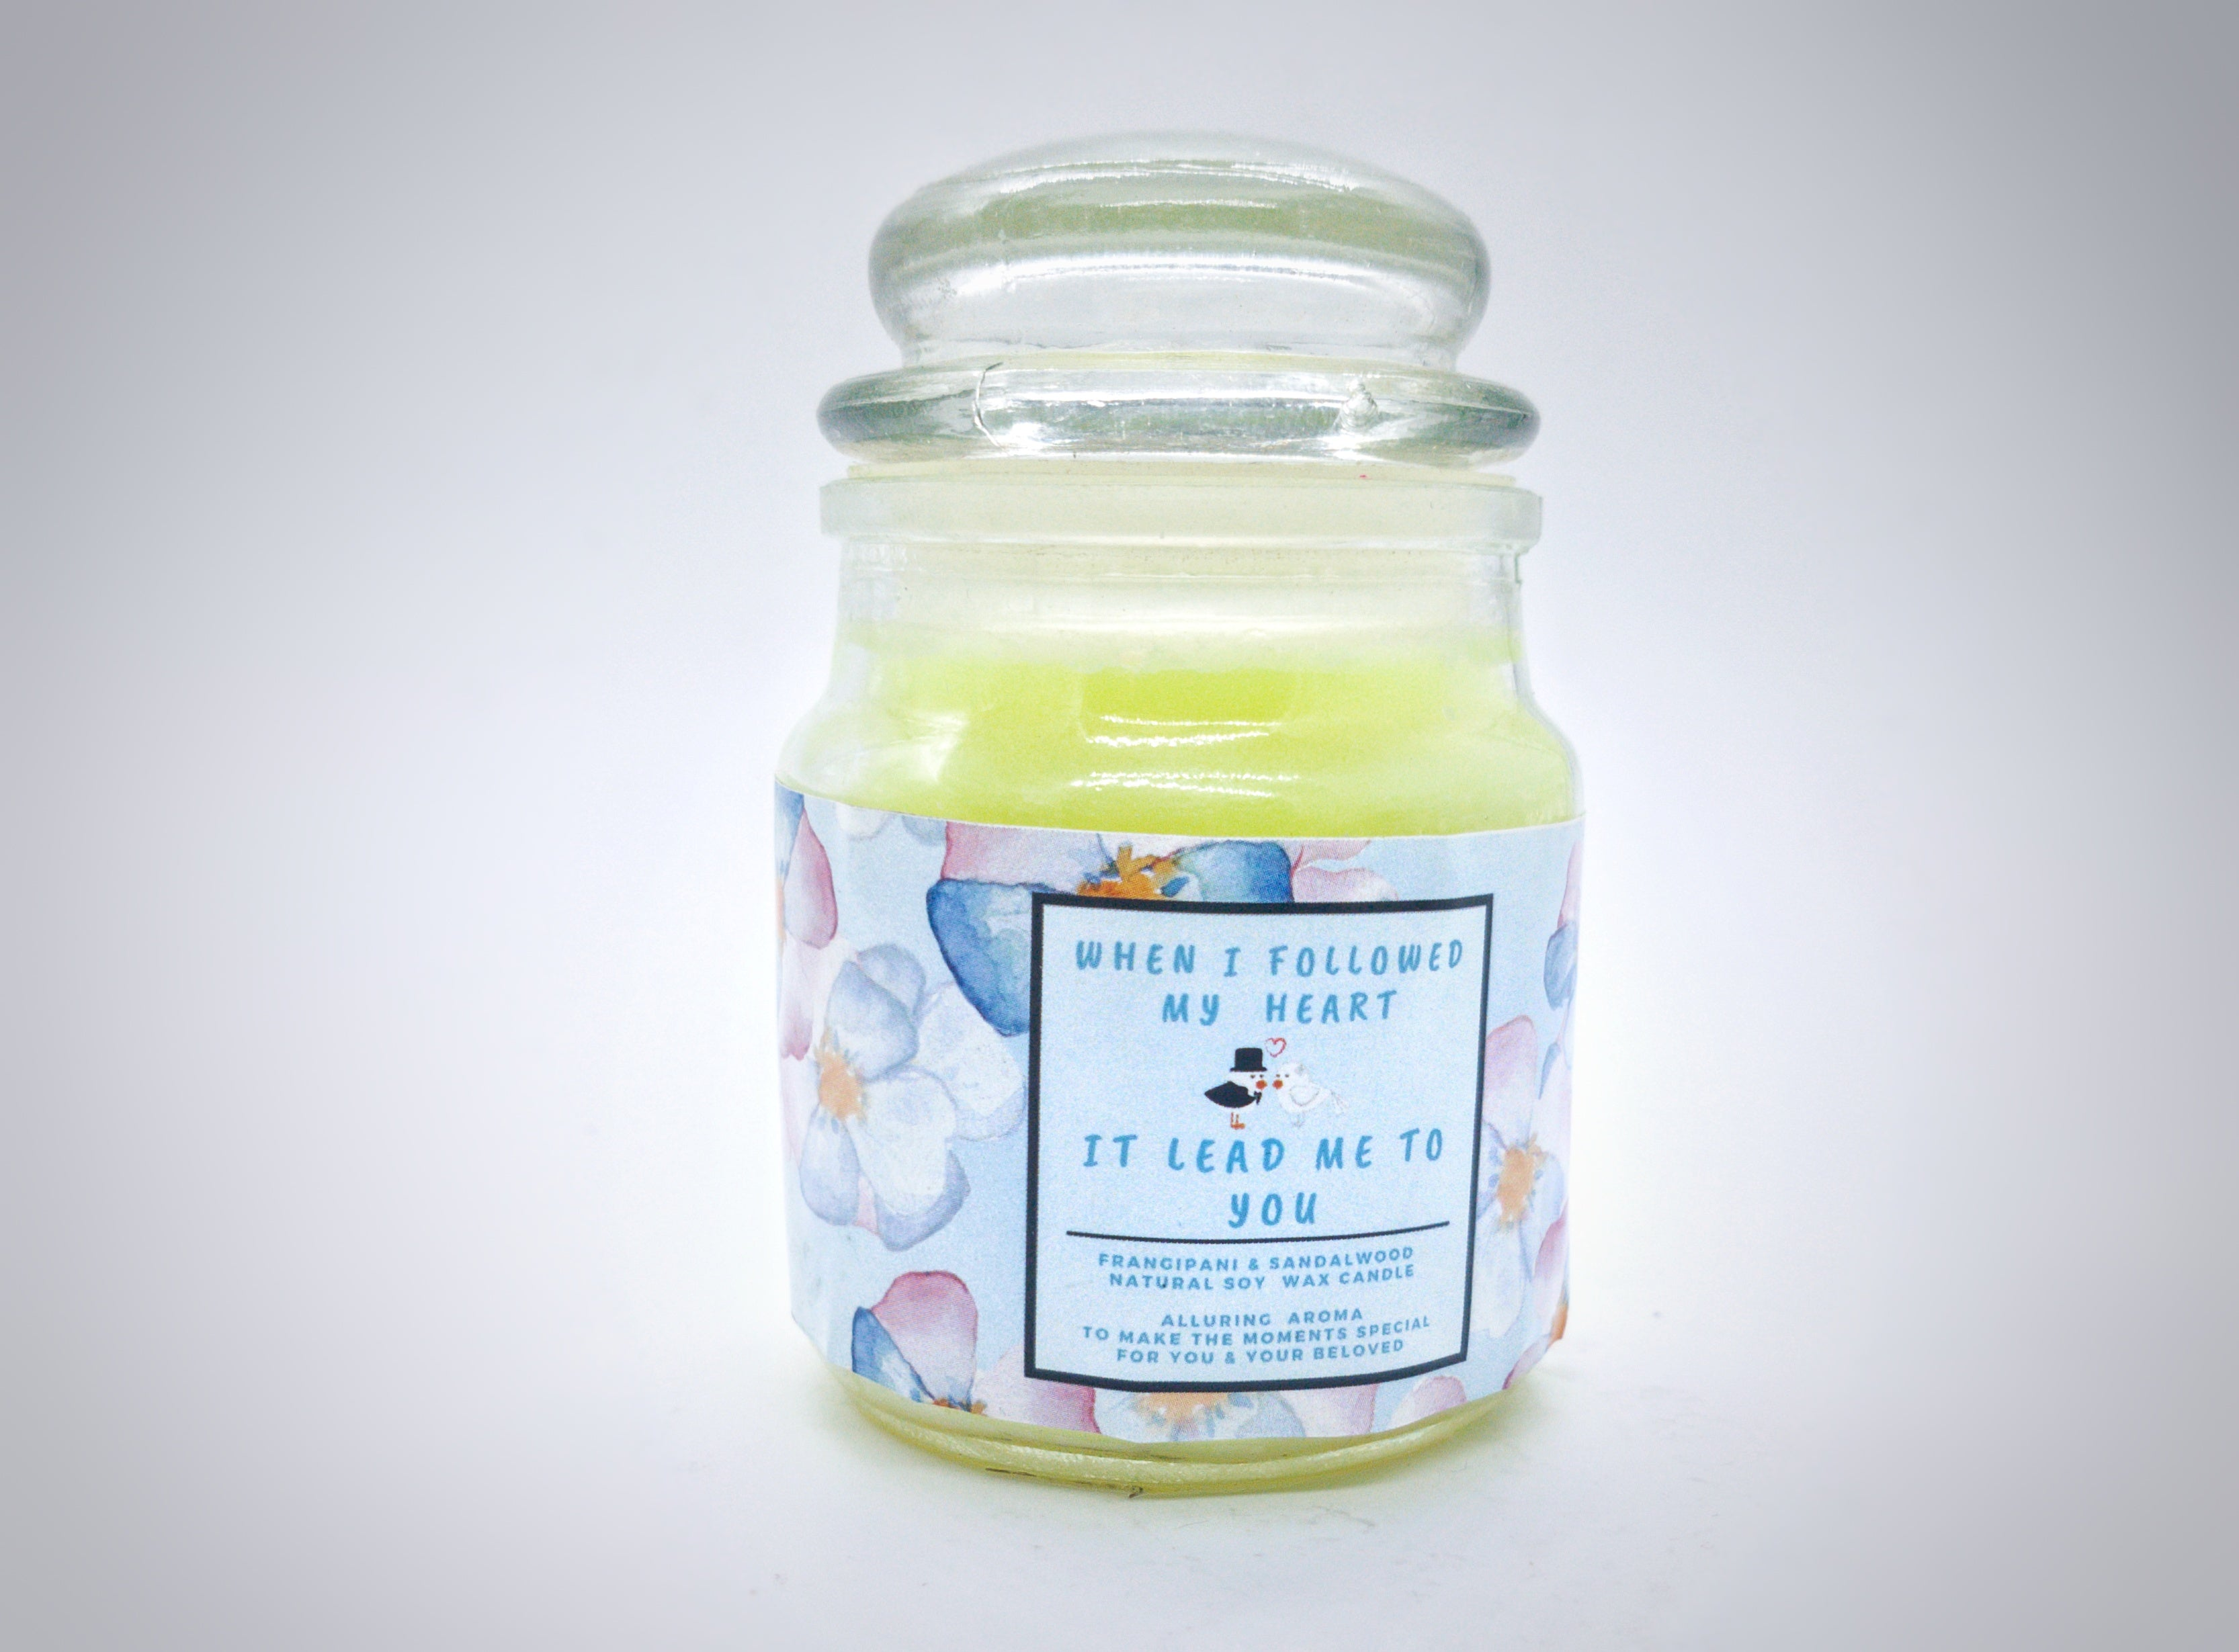 Yours Bee Loved - Quotes Candle | Natural Soy Wax Candle |  Frangipani & Sandalwood Fragrance - YoursBeeLoved